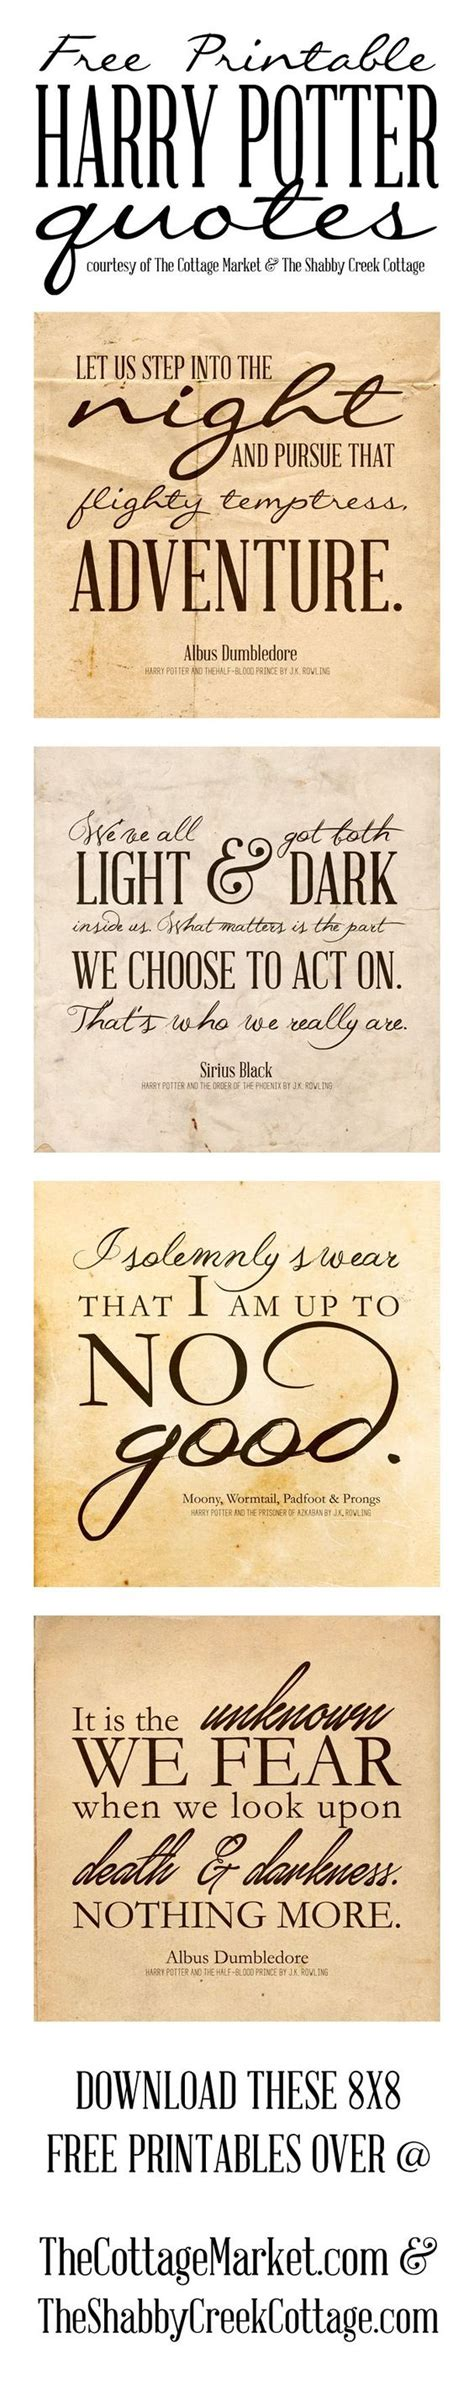 free printable harry potter quotes the cottage market free harry potter quotes printables the cottage